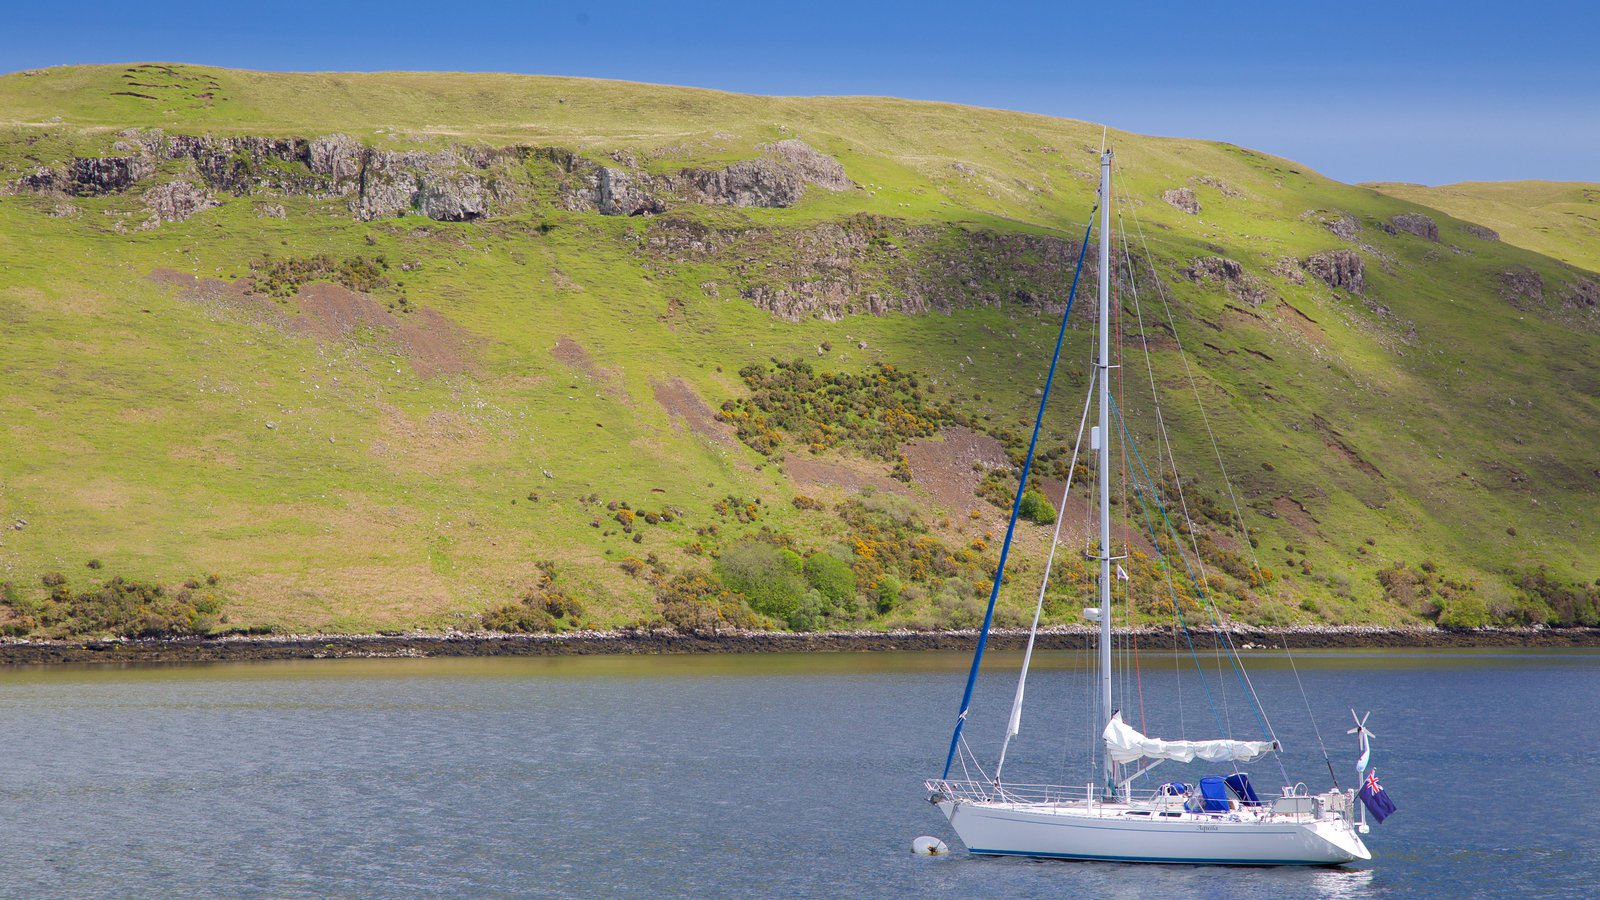 Talisker Distillery featuring sailing, tranquil scenes and a lake or waterhole